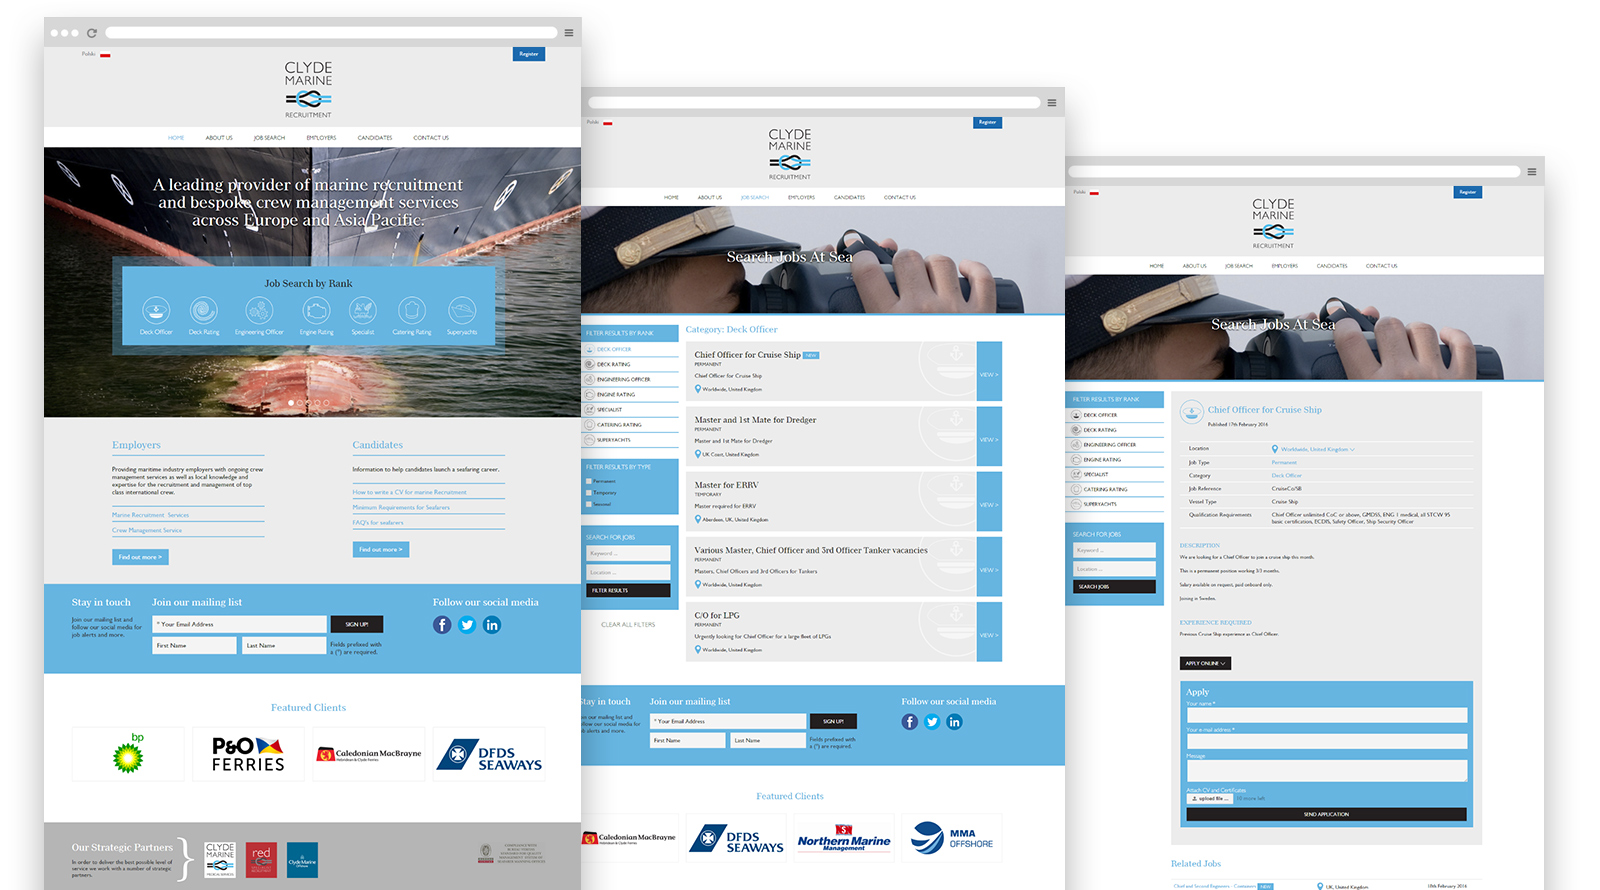 Clyde Marine Recruitment website pages